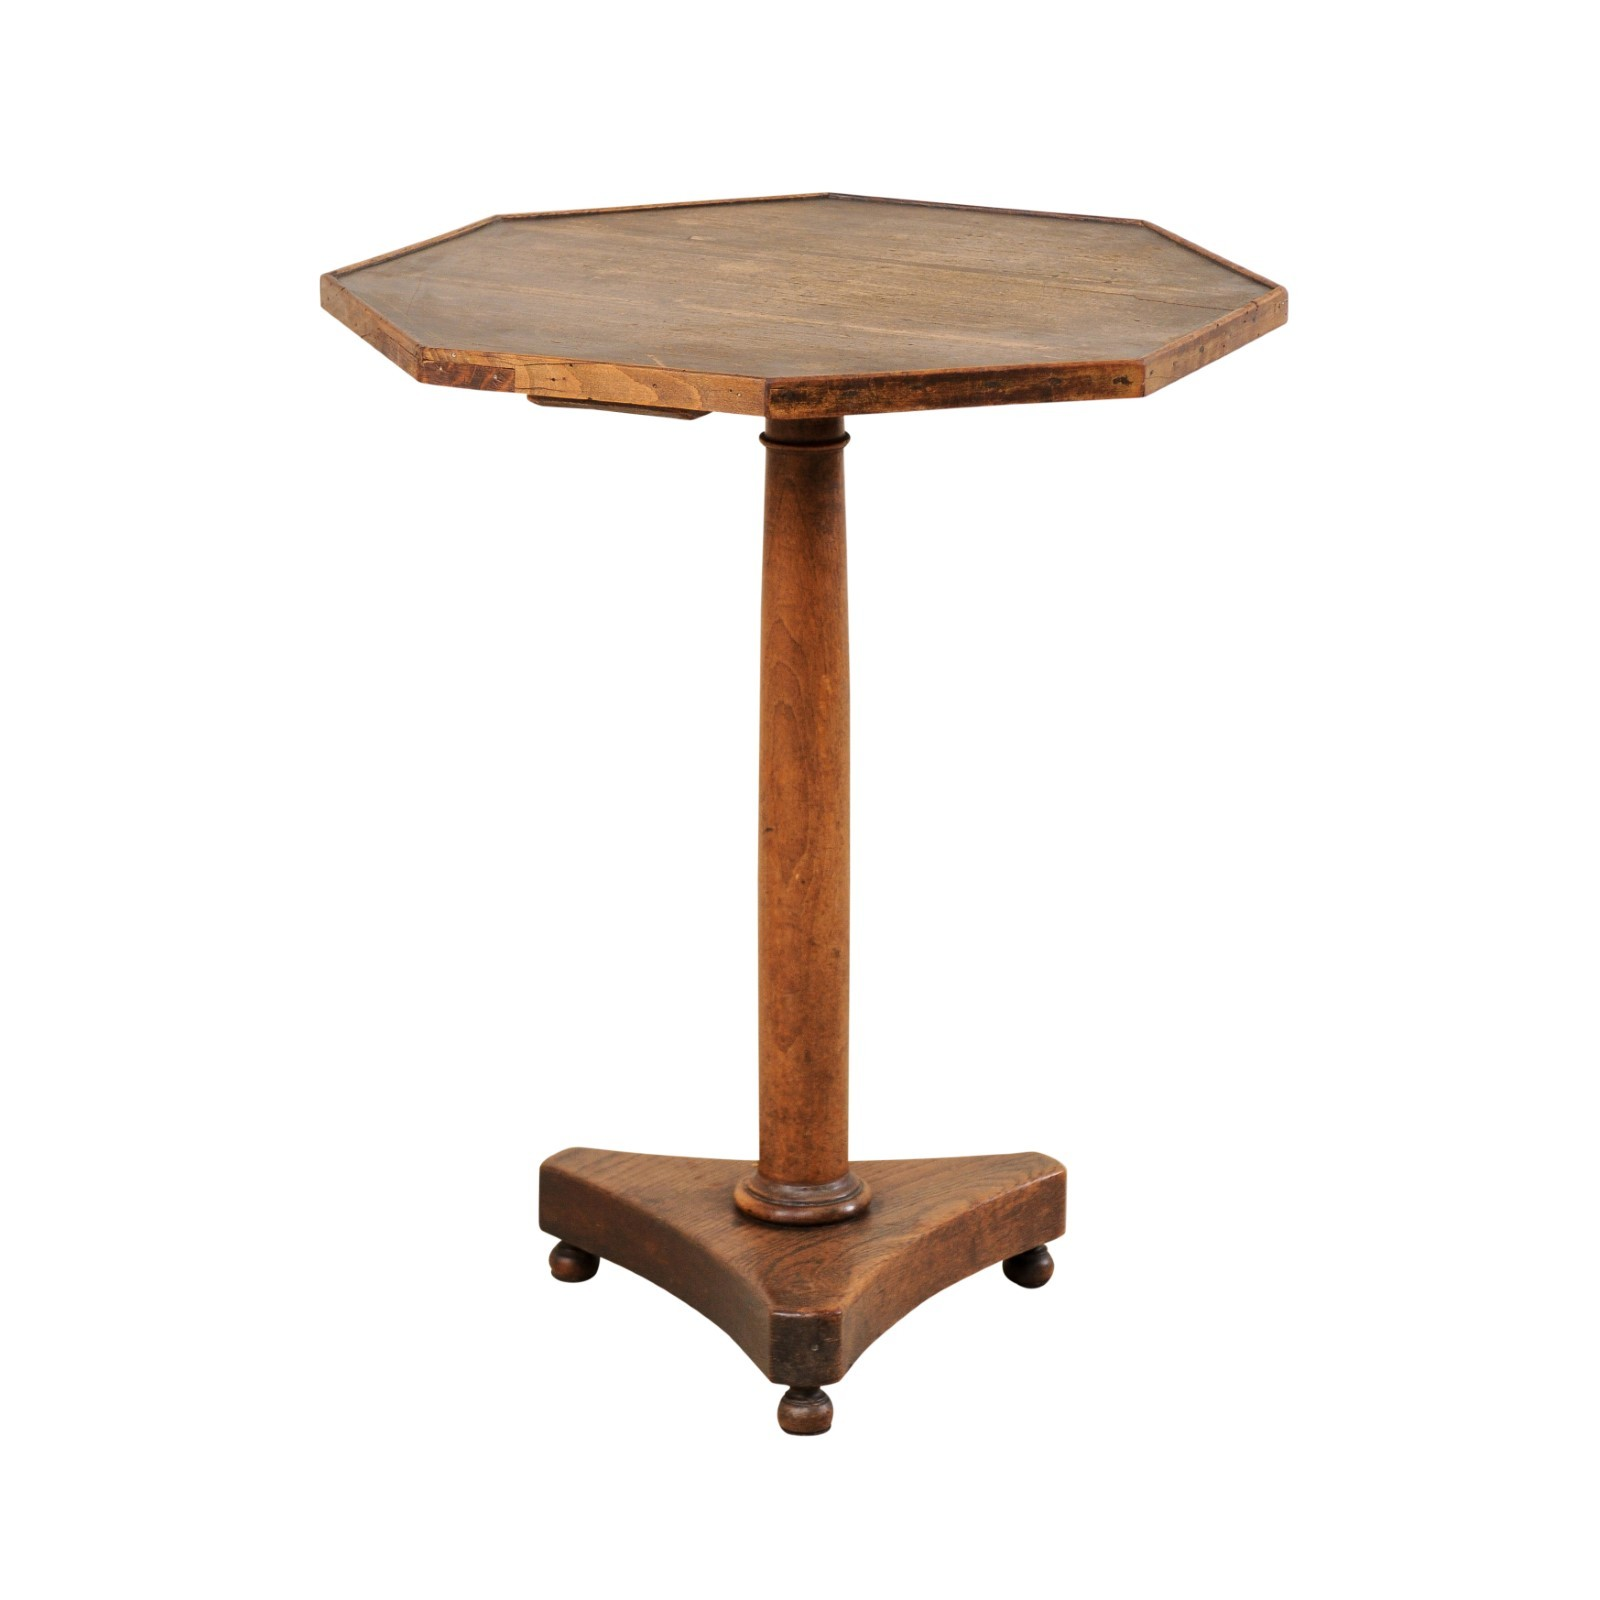 French Pedestal Table w/Octagonal Top